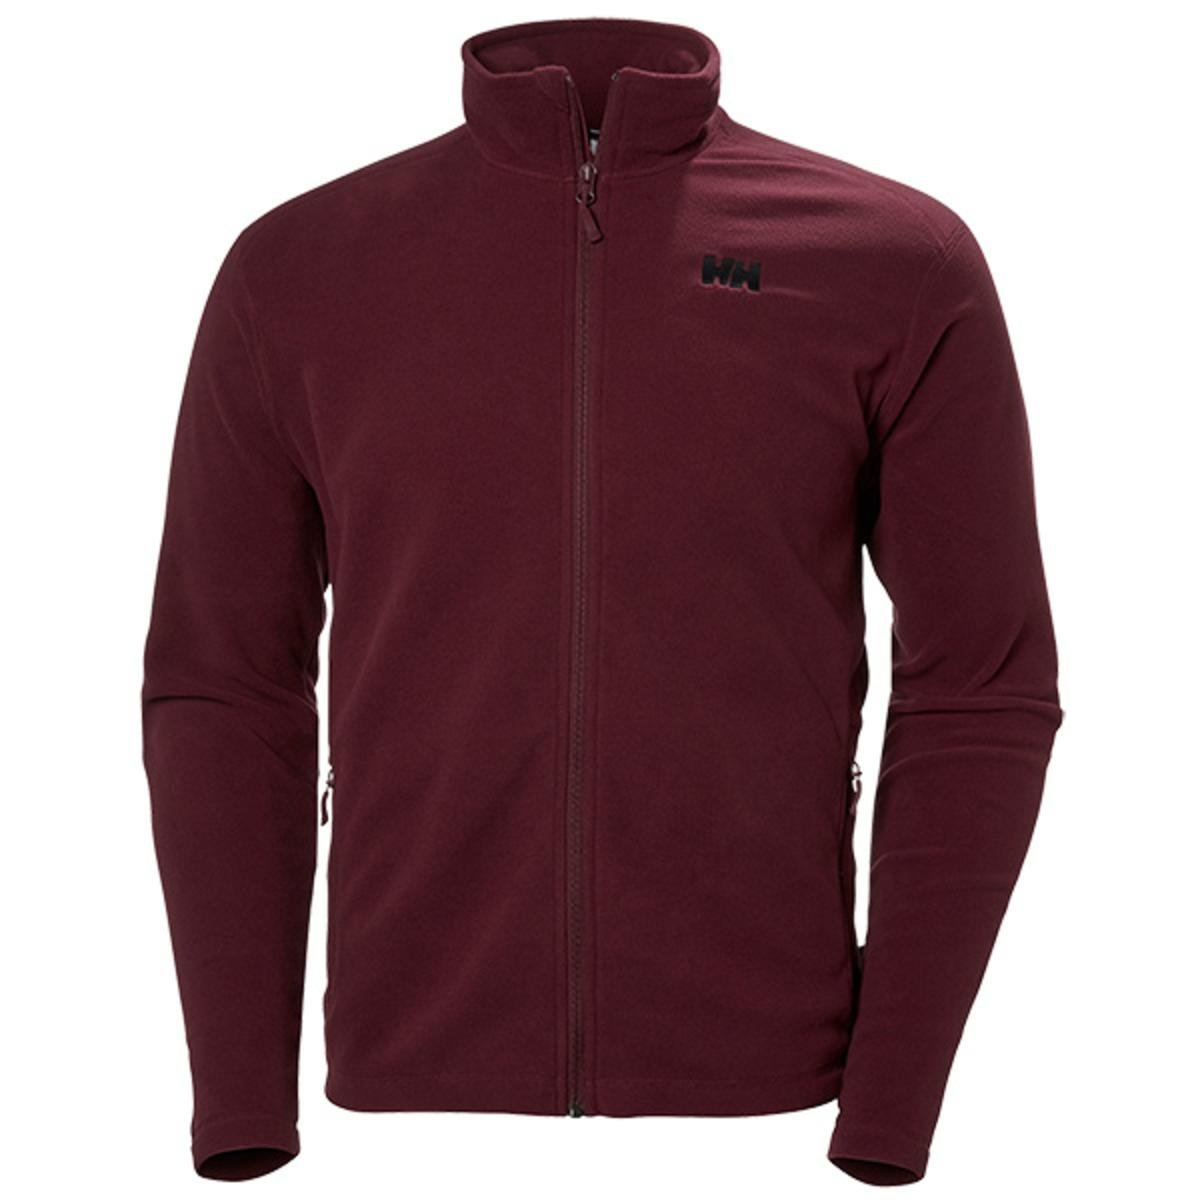 Helly Hansen Men s Daybreaker Fleece Jacket - Port - The Warming Store 30a8ee236